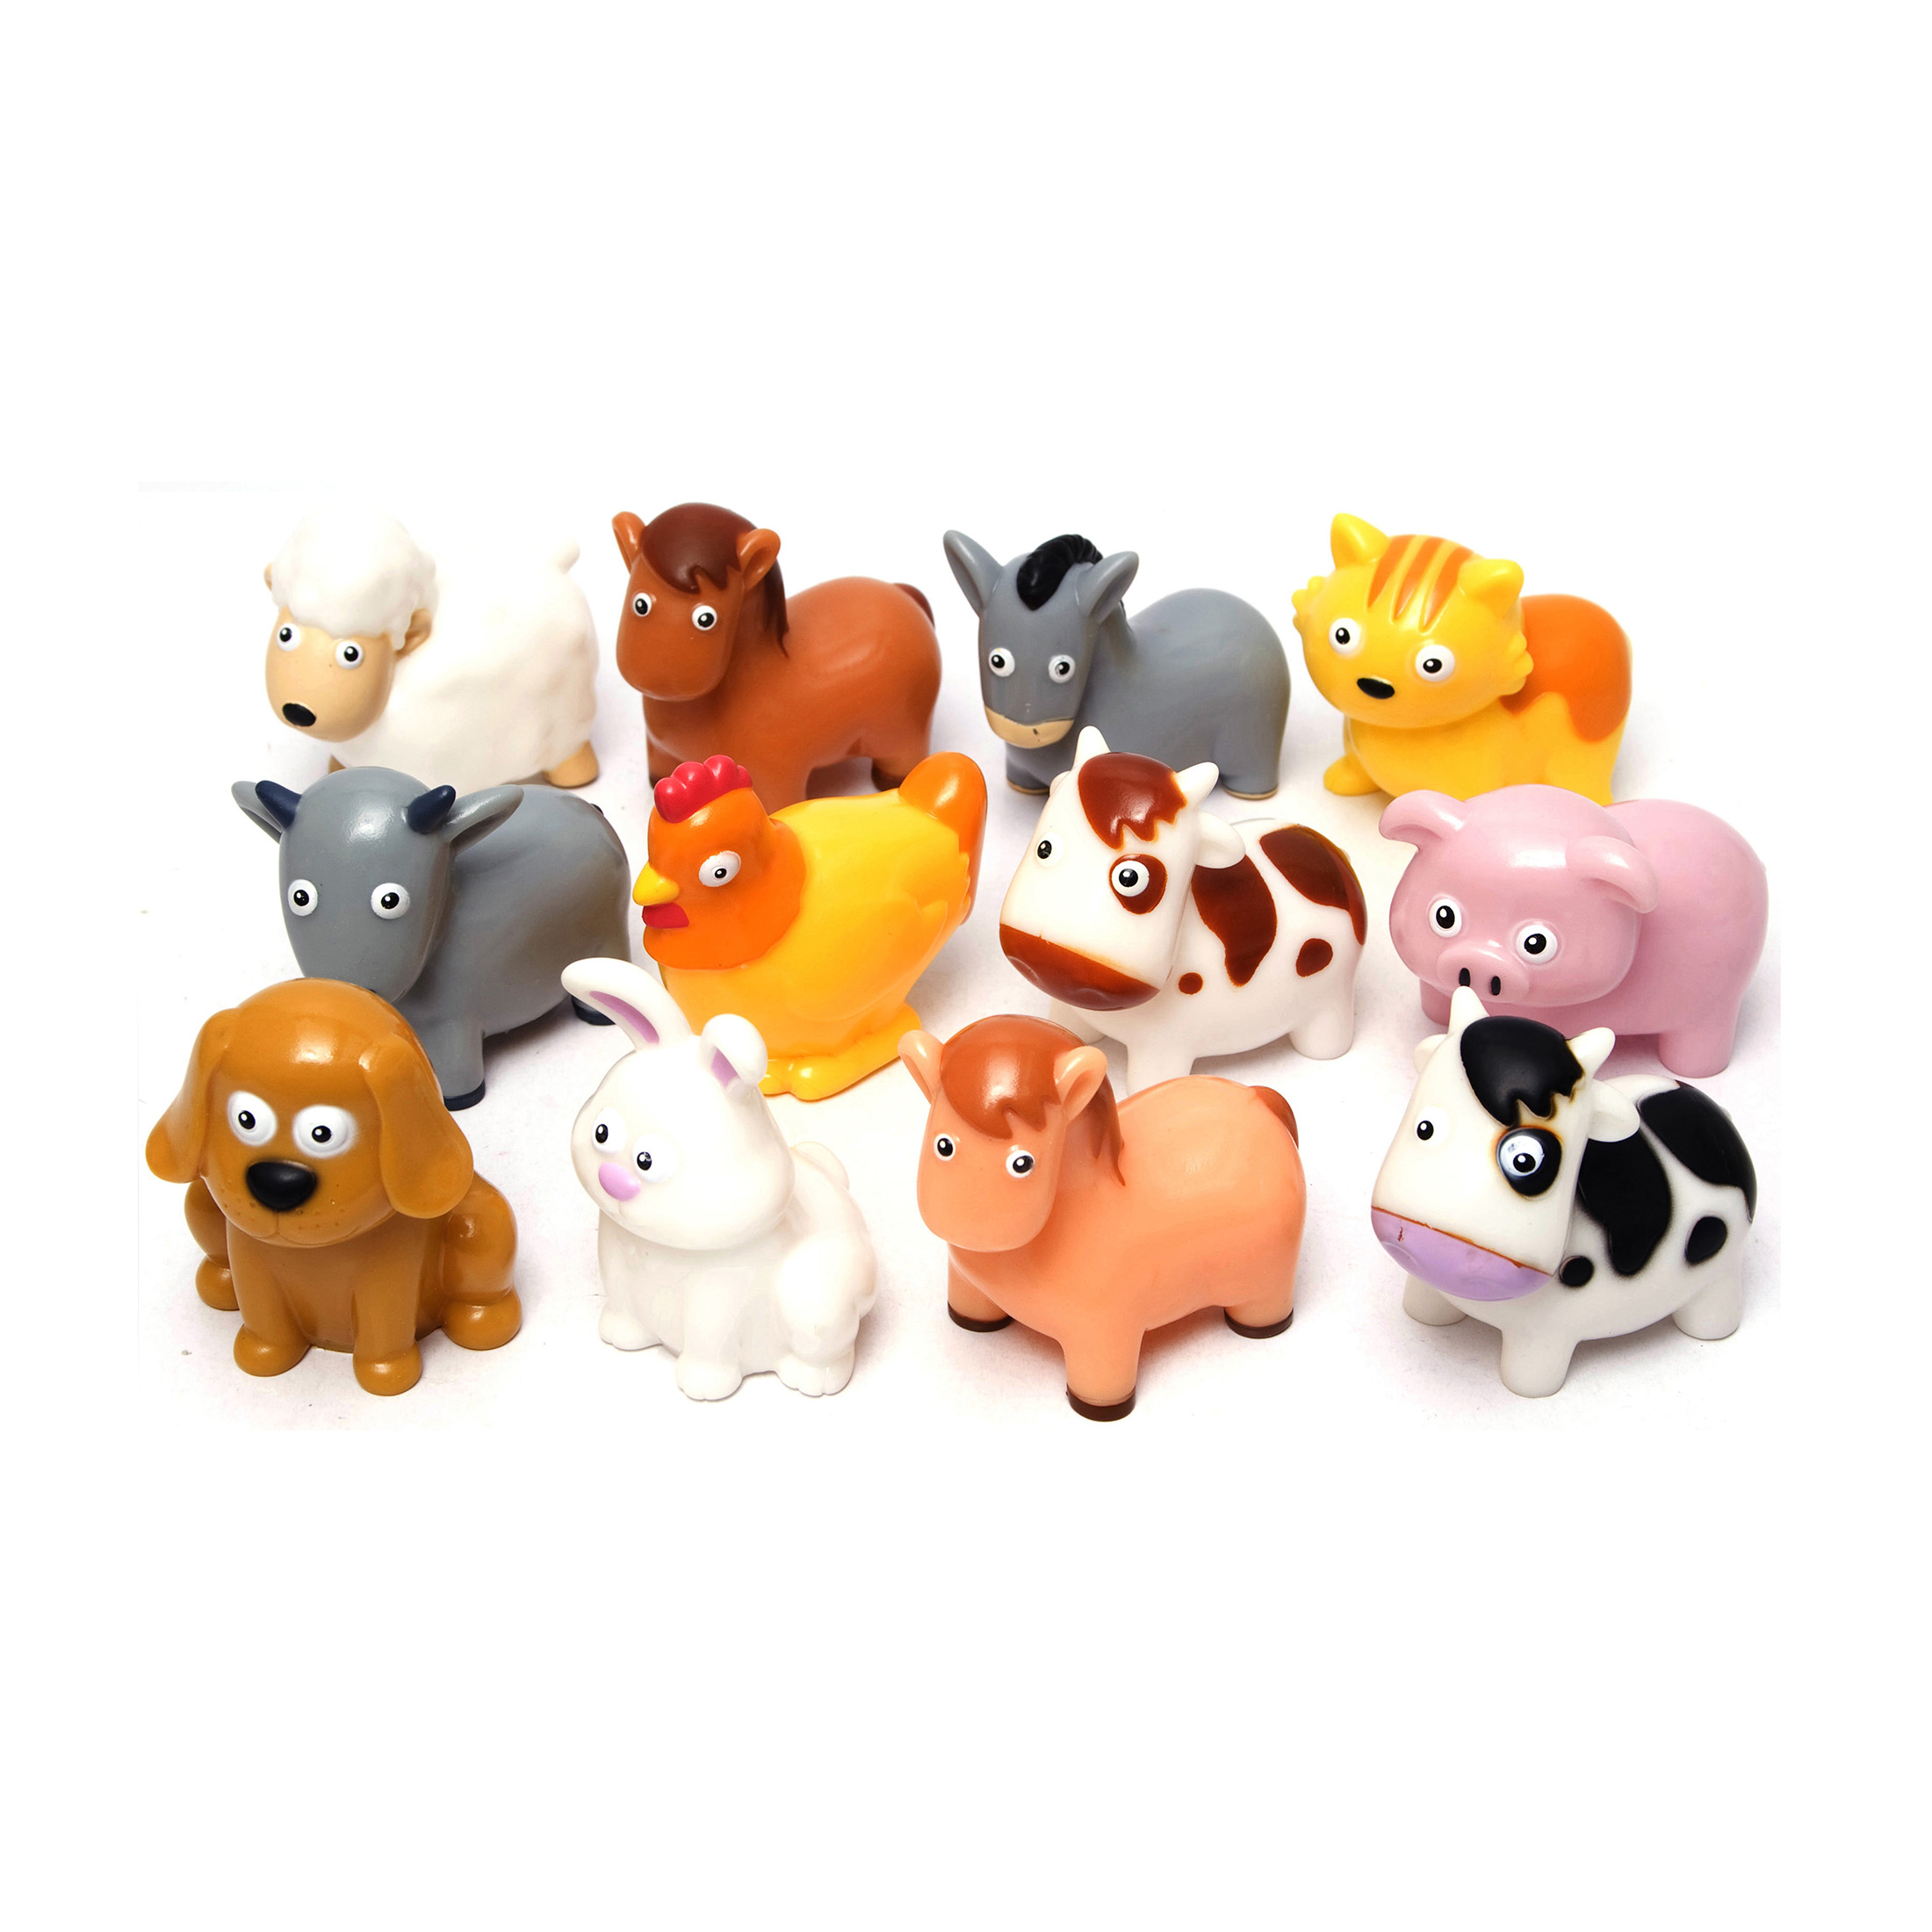 Small Bucket Allows for Easy Storage and Quick cleanup of Your Childs Pretend Play Toys! 40 Piece Farm Animal Toy playset with Animals and Accessories Boley Small Bucket Farm Animal Toys